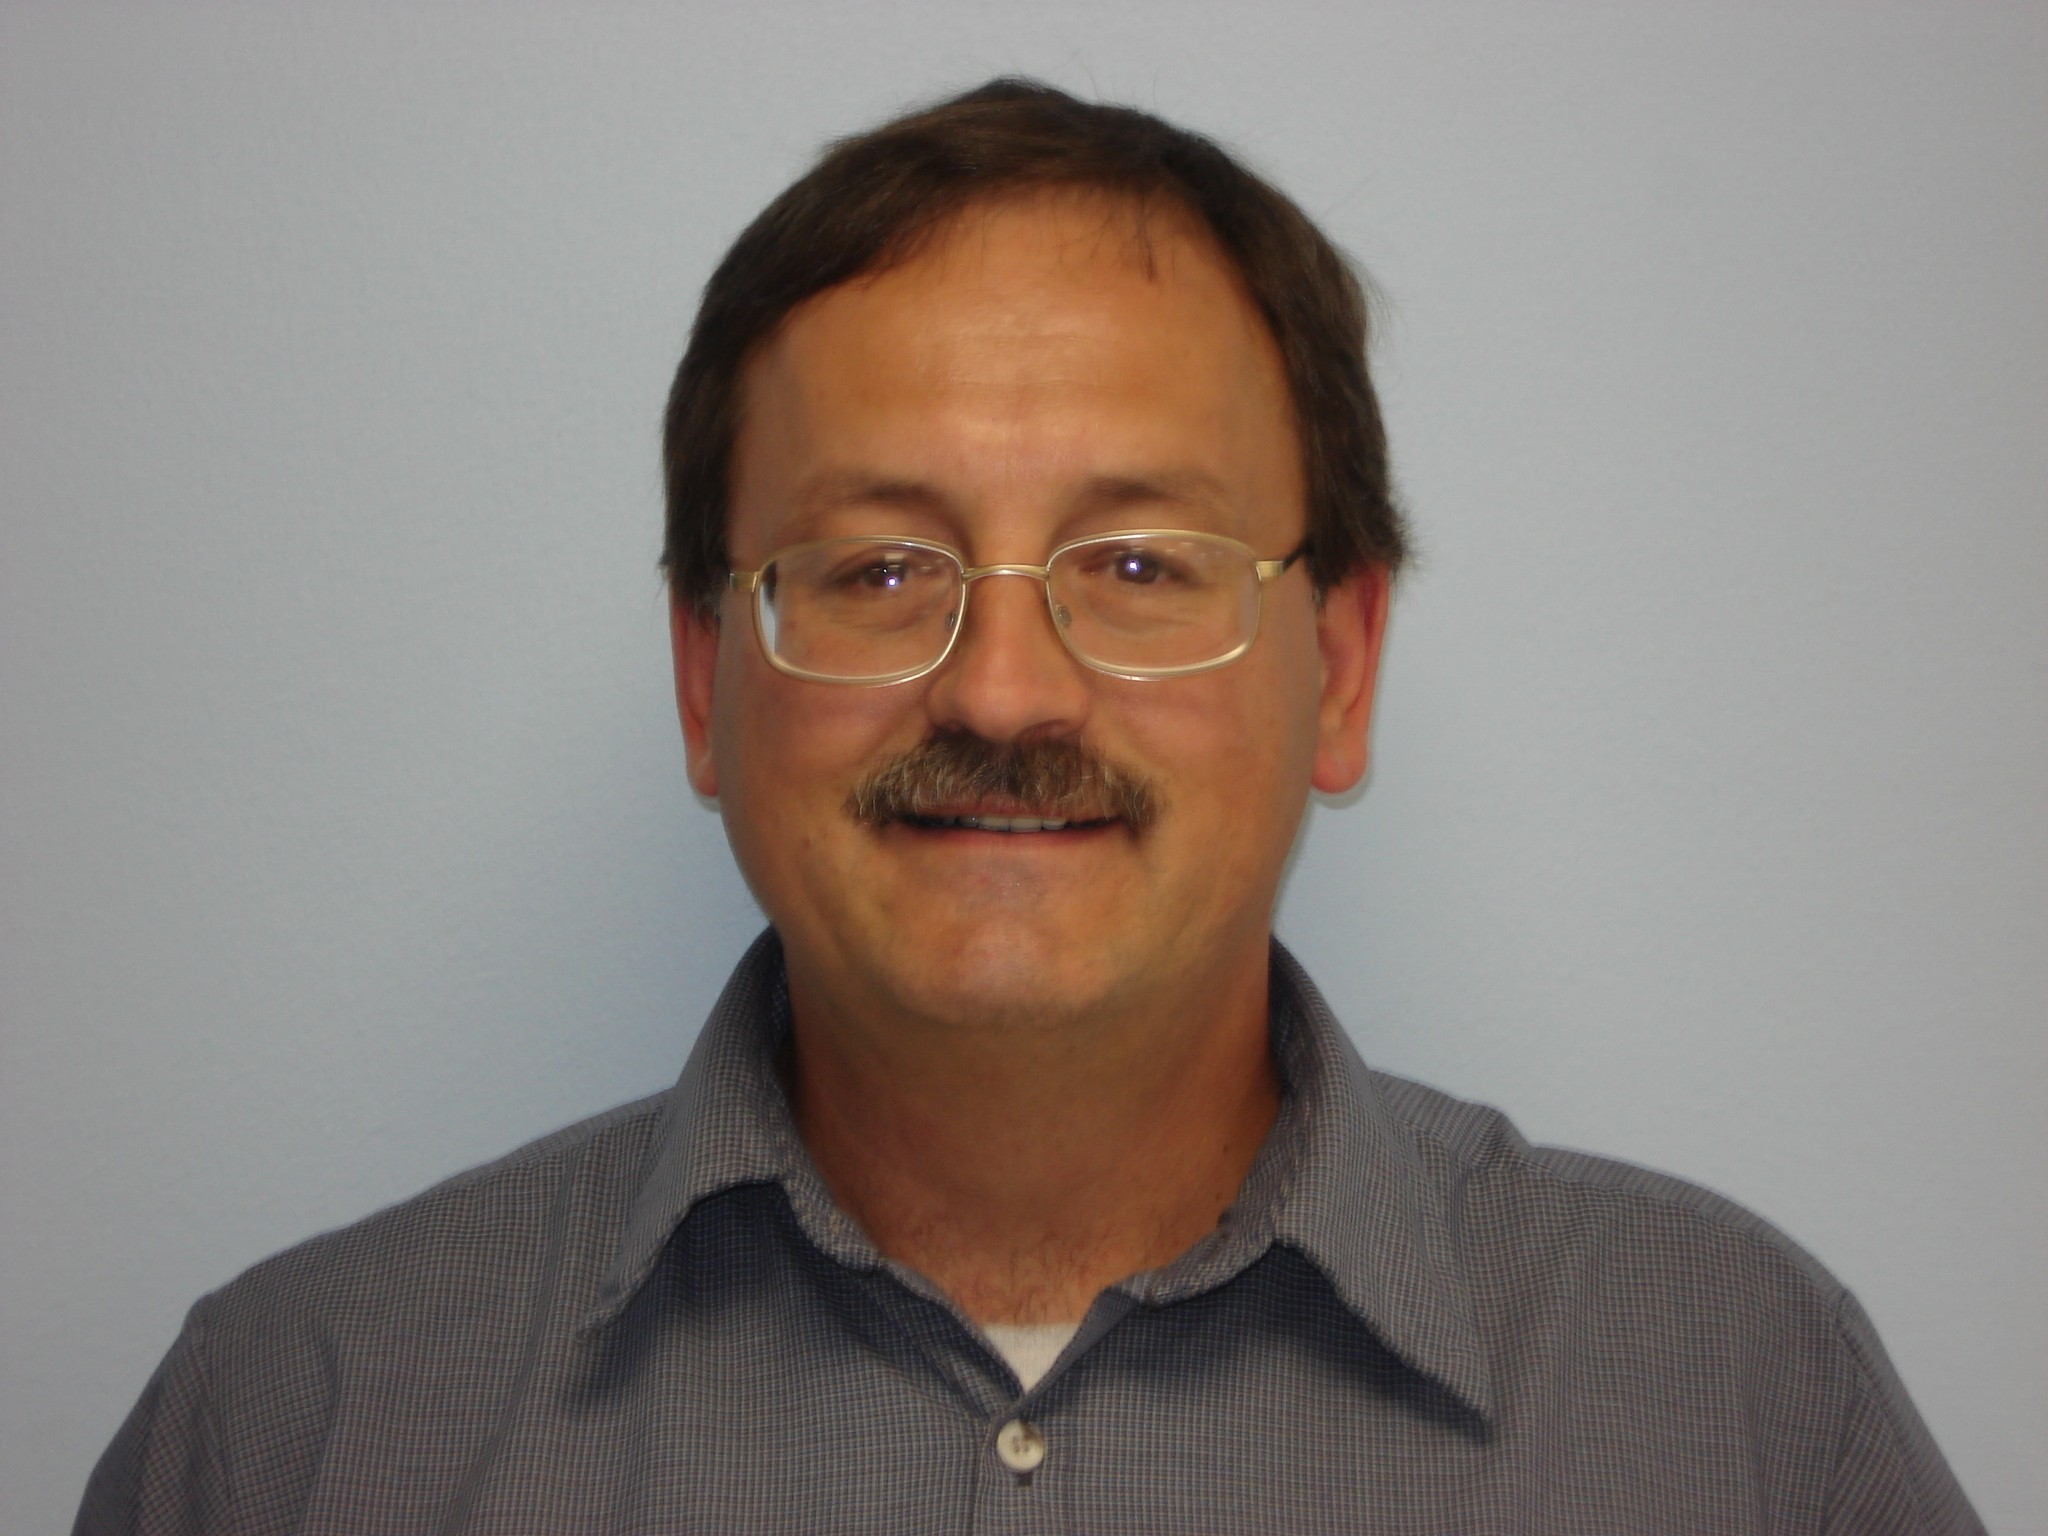 Greg Patek is a Comfort Technician at Comfort Control Systems, Inc.